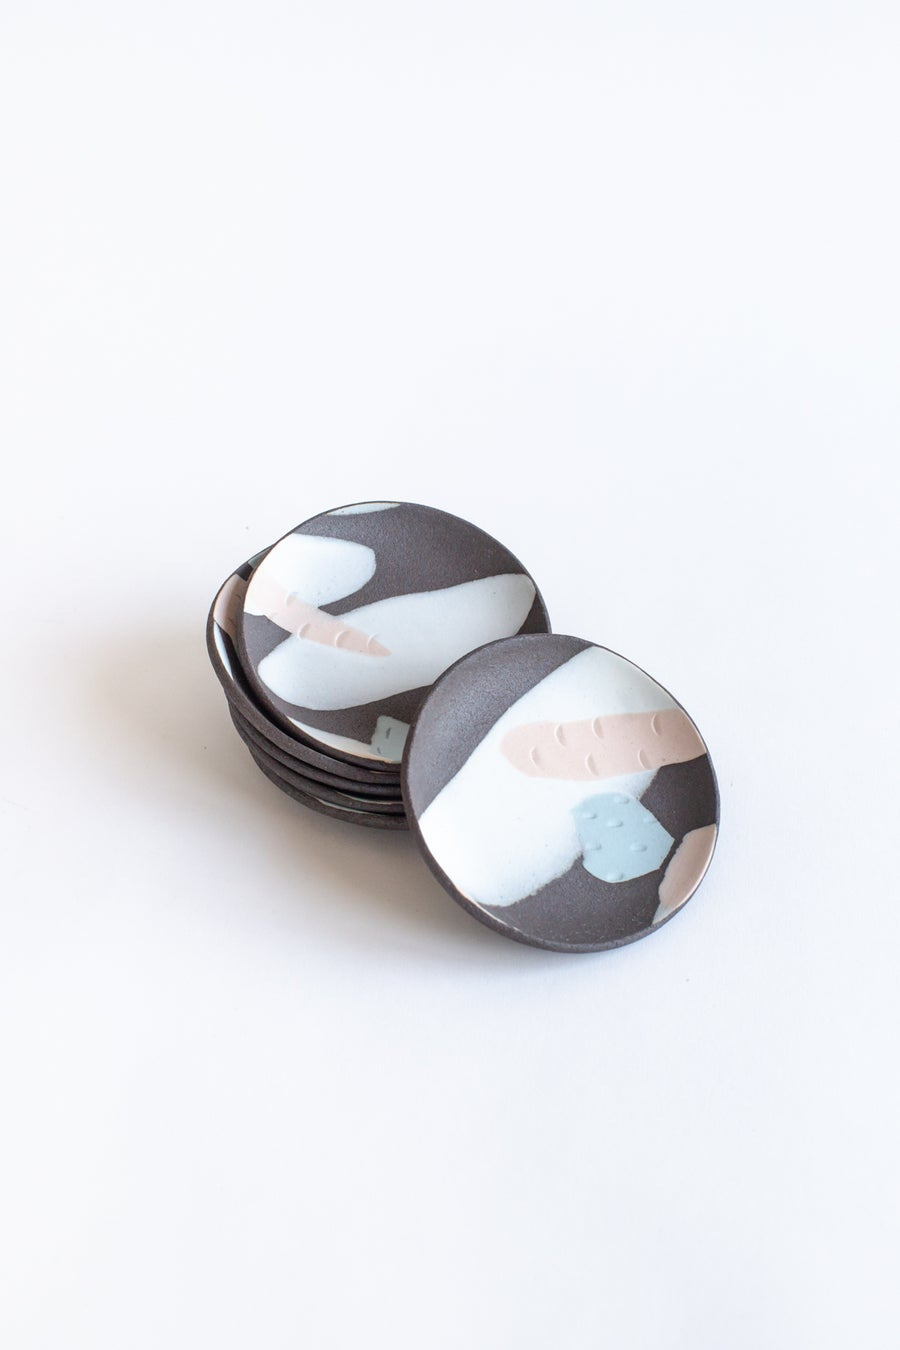 Image of Dark Clay with Pink and Blue Pastel Jewelry Dishes